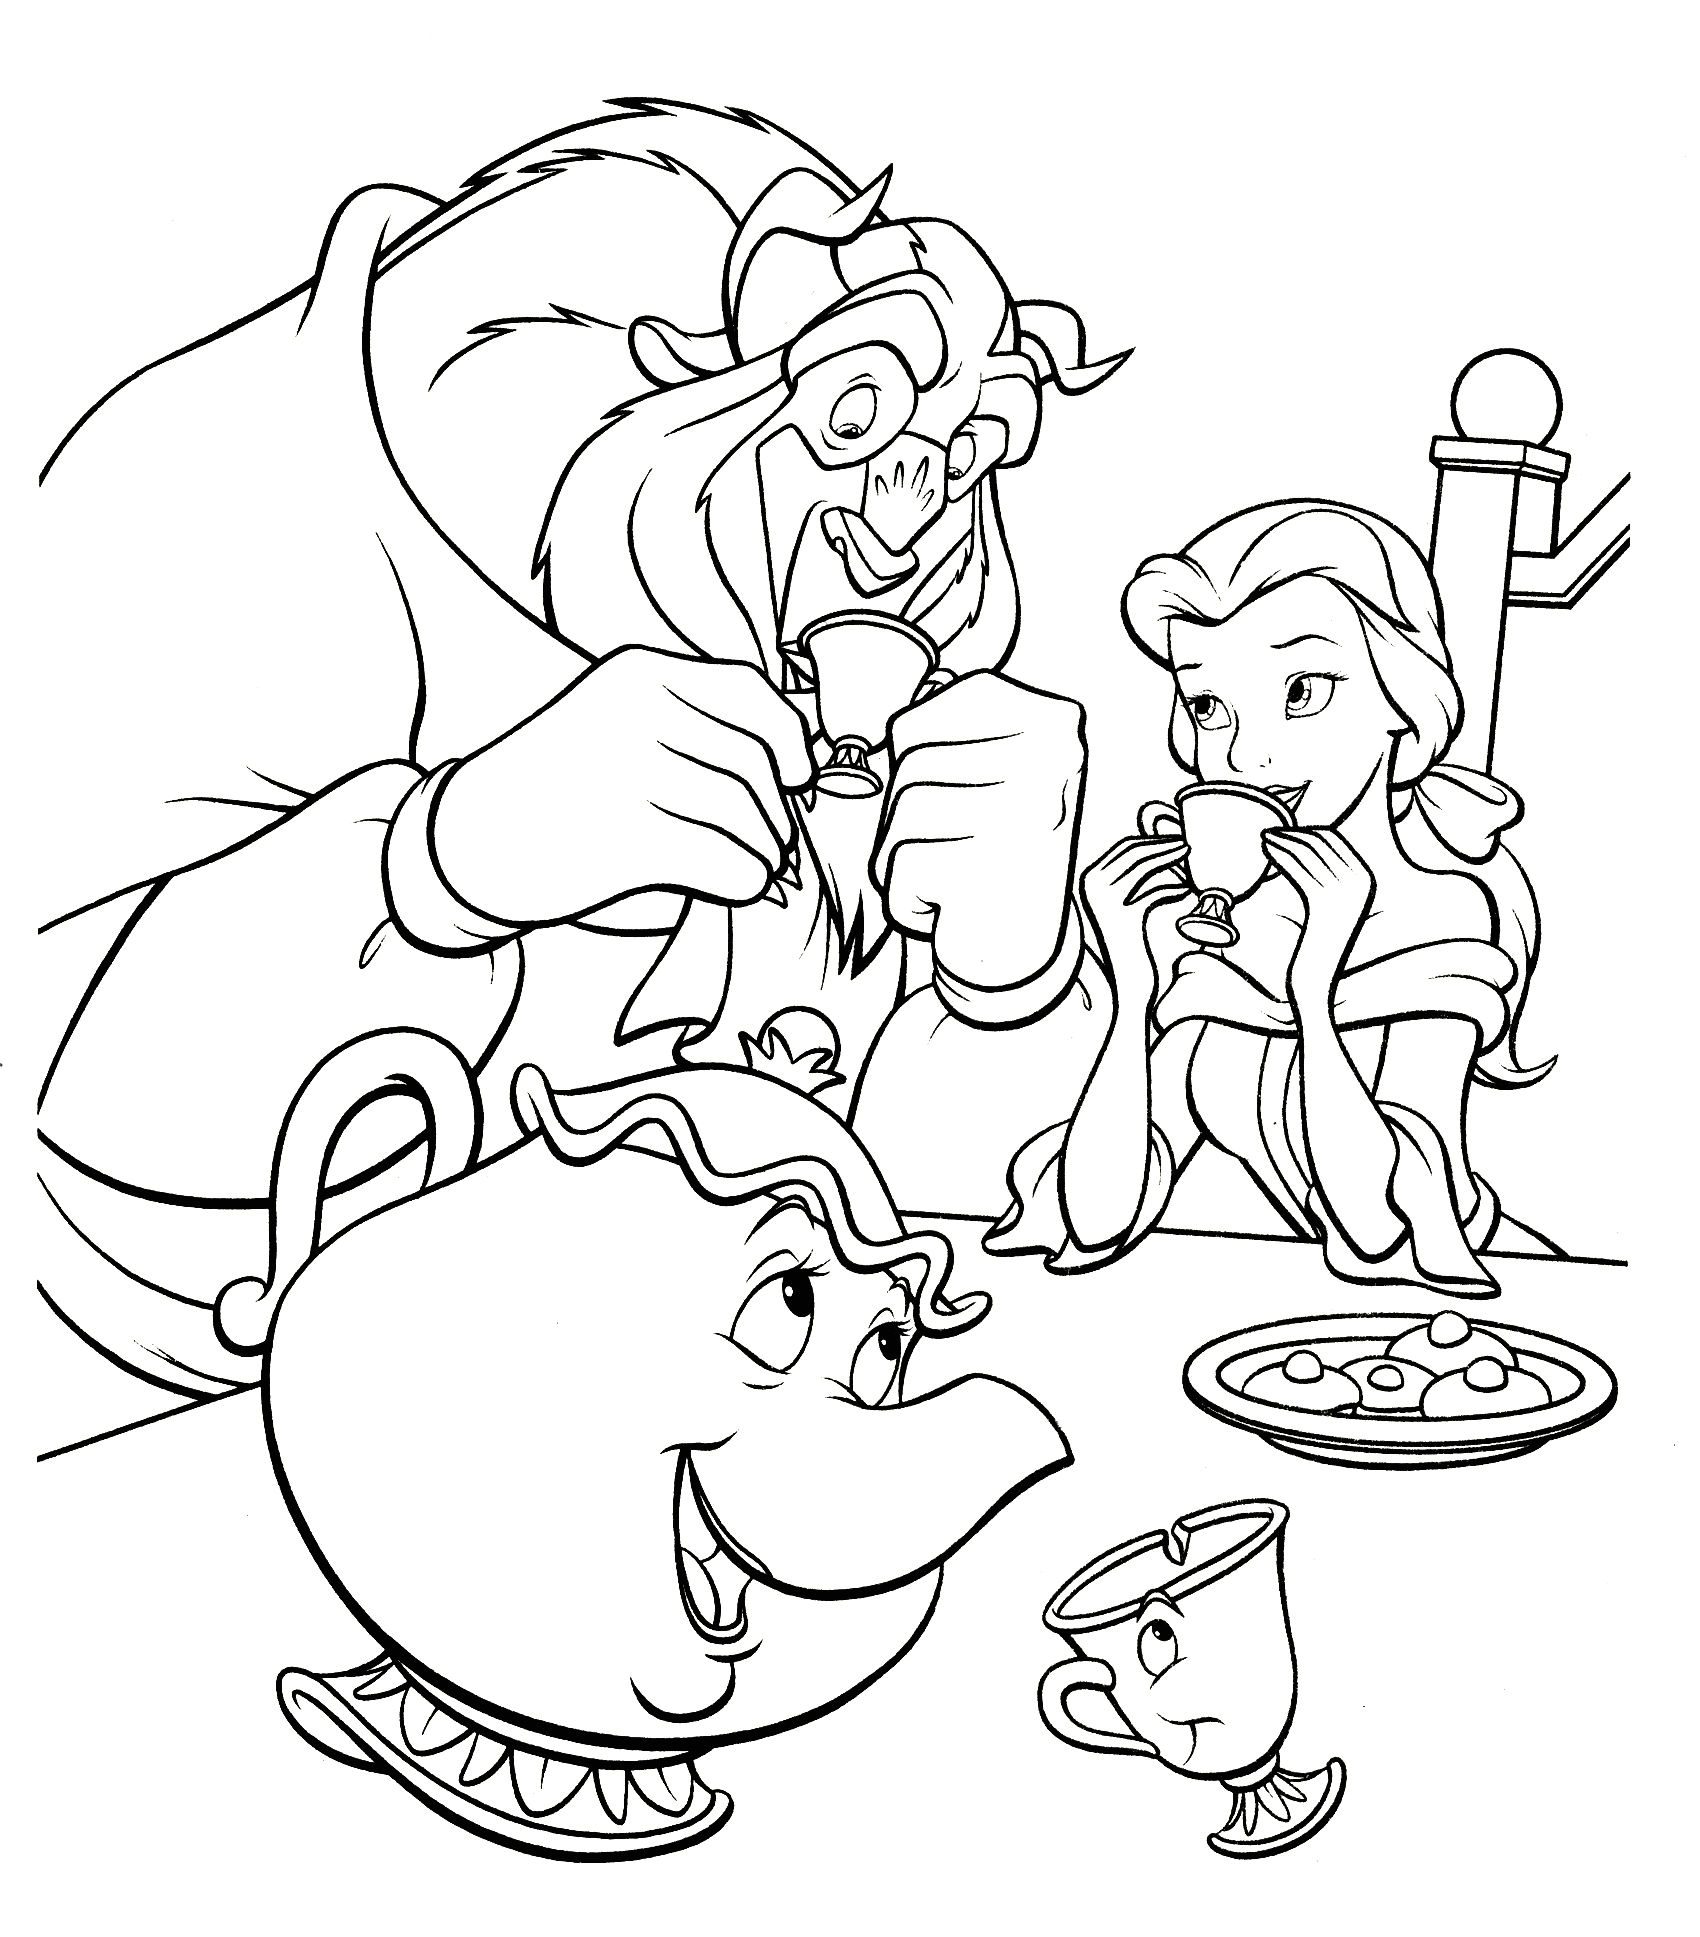 Coloring Pages Beauty and the Beast Disney Beauty and the Beast Free Colouring Pages